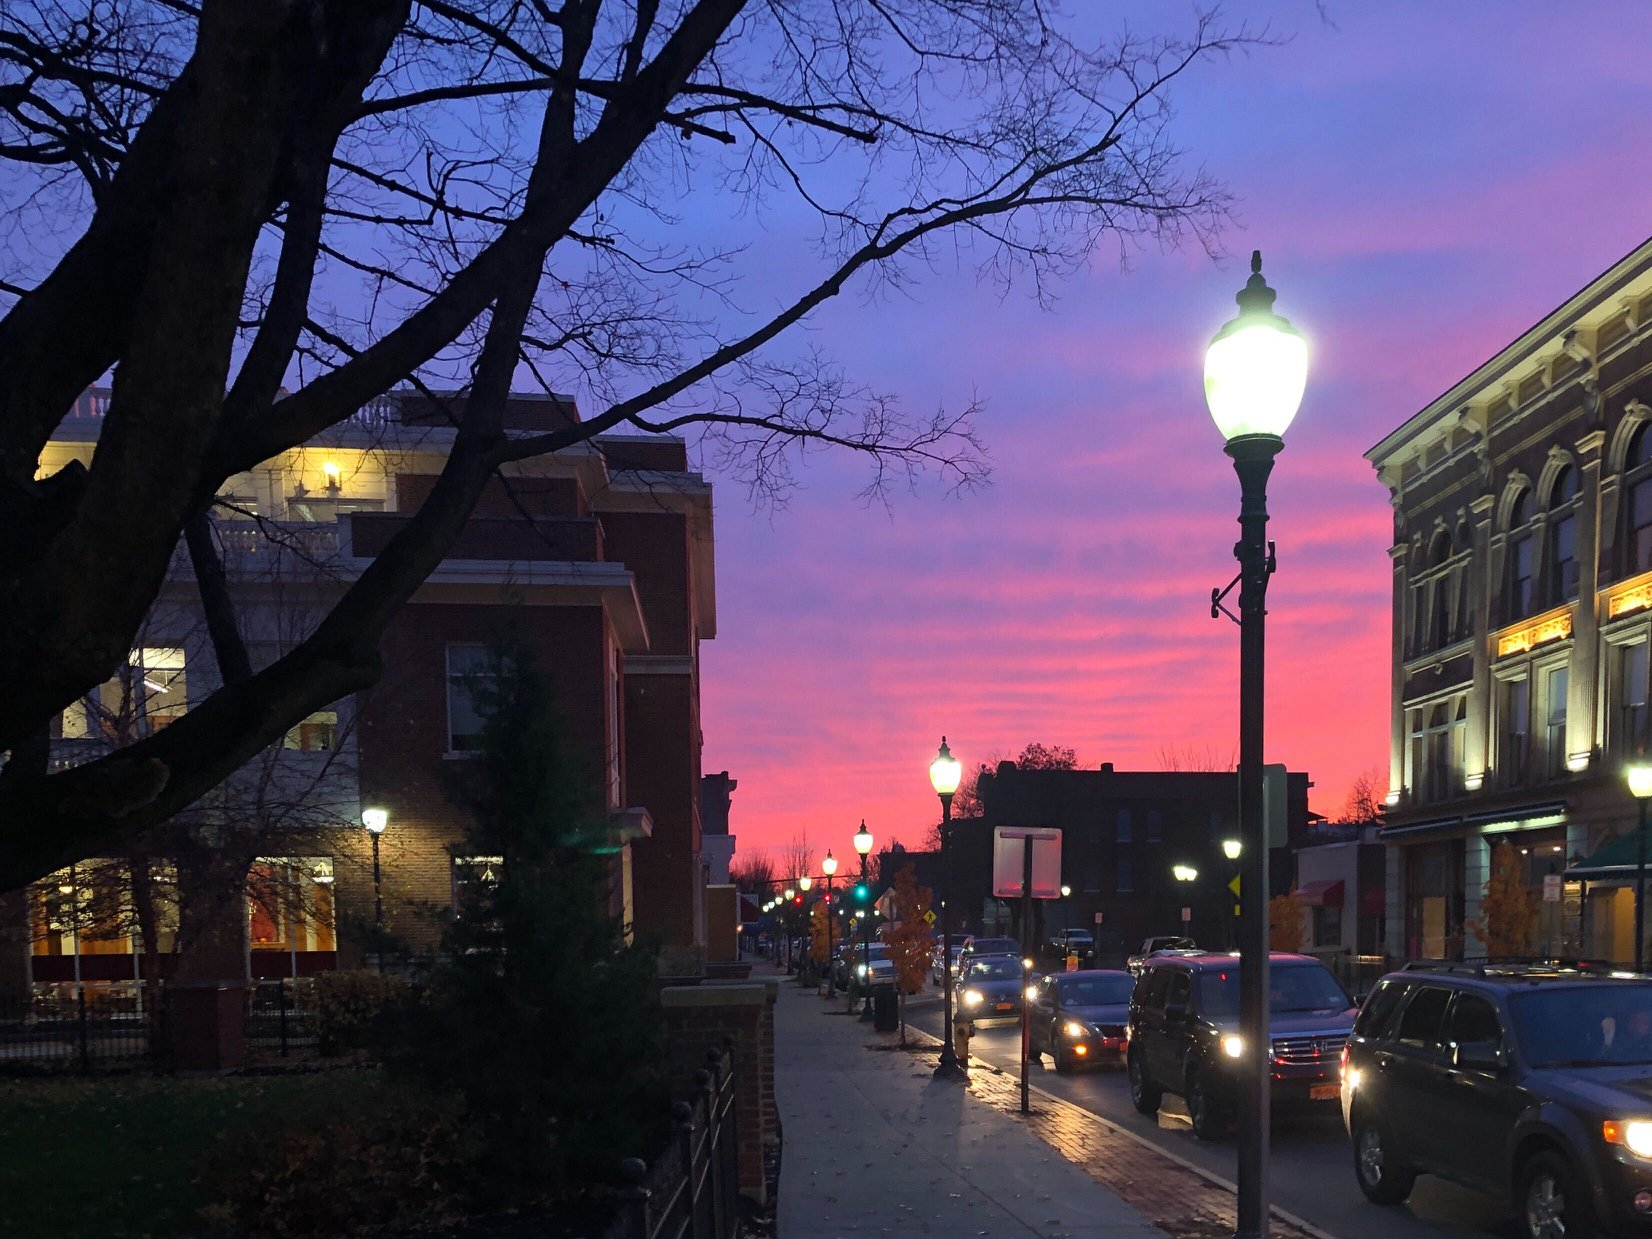 Glens Falls Smart City Initiatives Light Up the Town